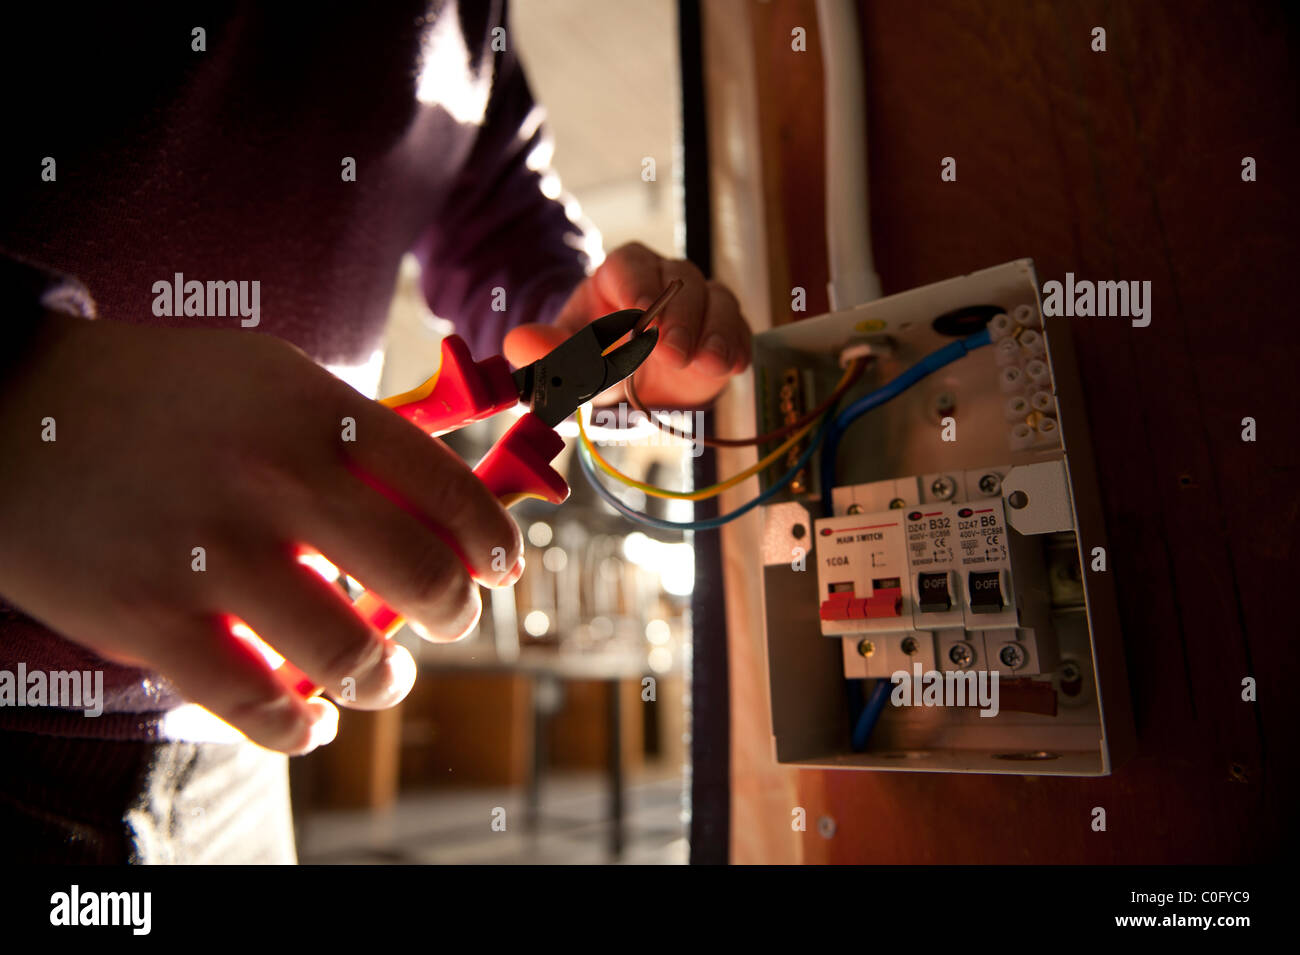 An electrician trimming electrical wires before fixing to a mains fuse box, UK - Stock Image